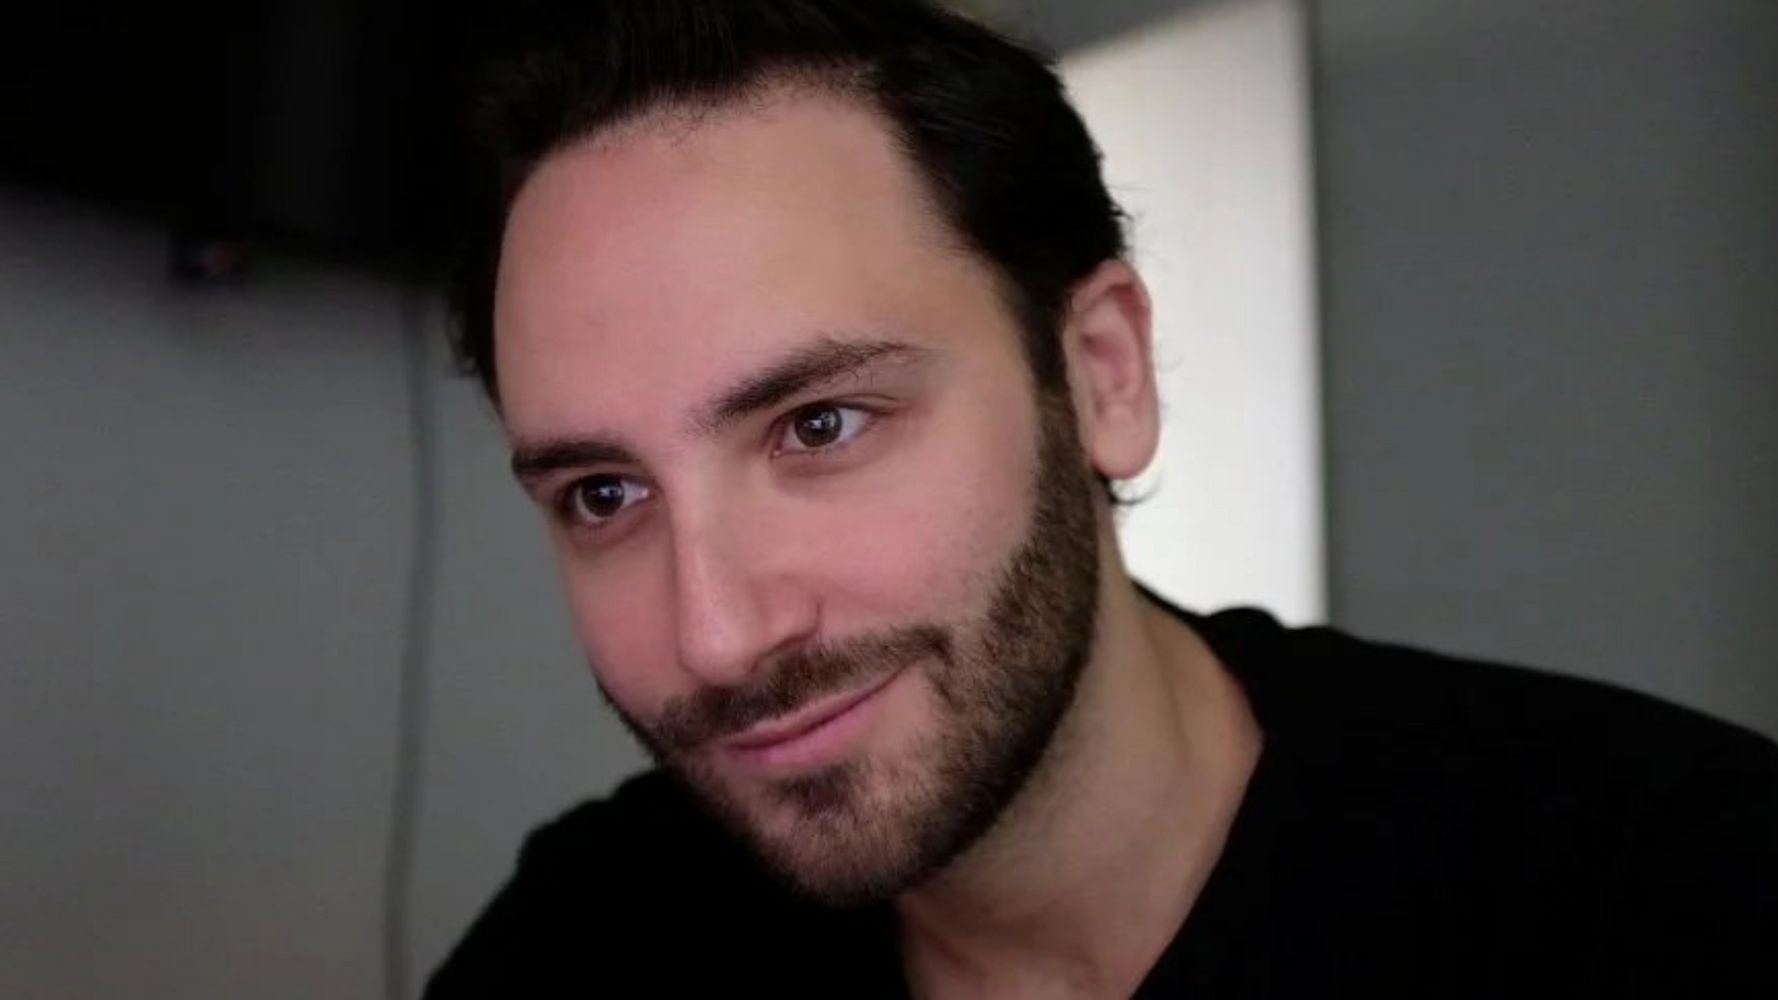 Morte de Reckful reacende debate sobre saúde mental e cultura do cancelamento